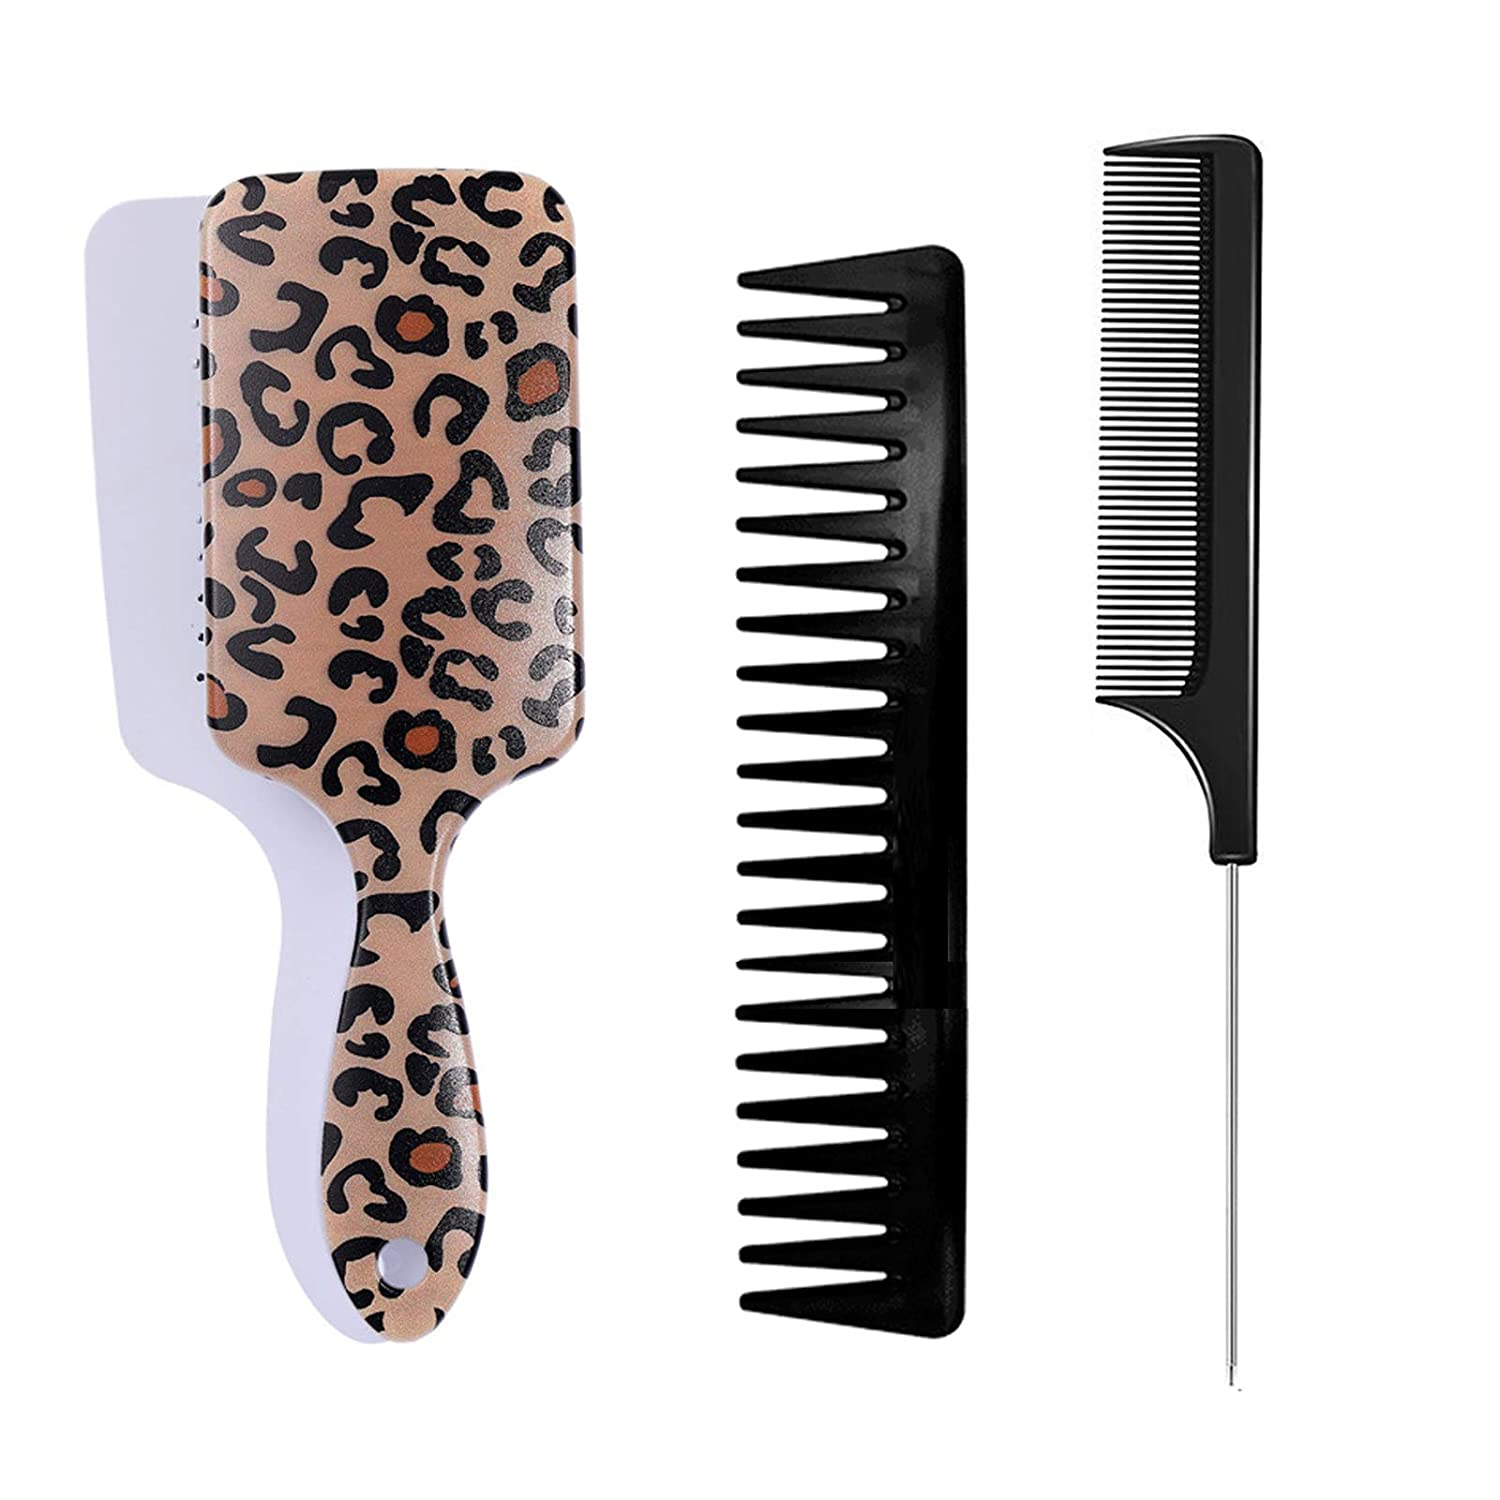 DKAF 3Pcs Hair San Diego Mall Brushes for Brush Leopard with Print Rapid rise Women